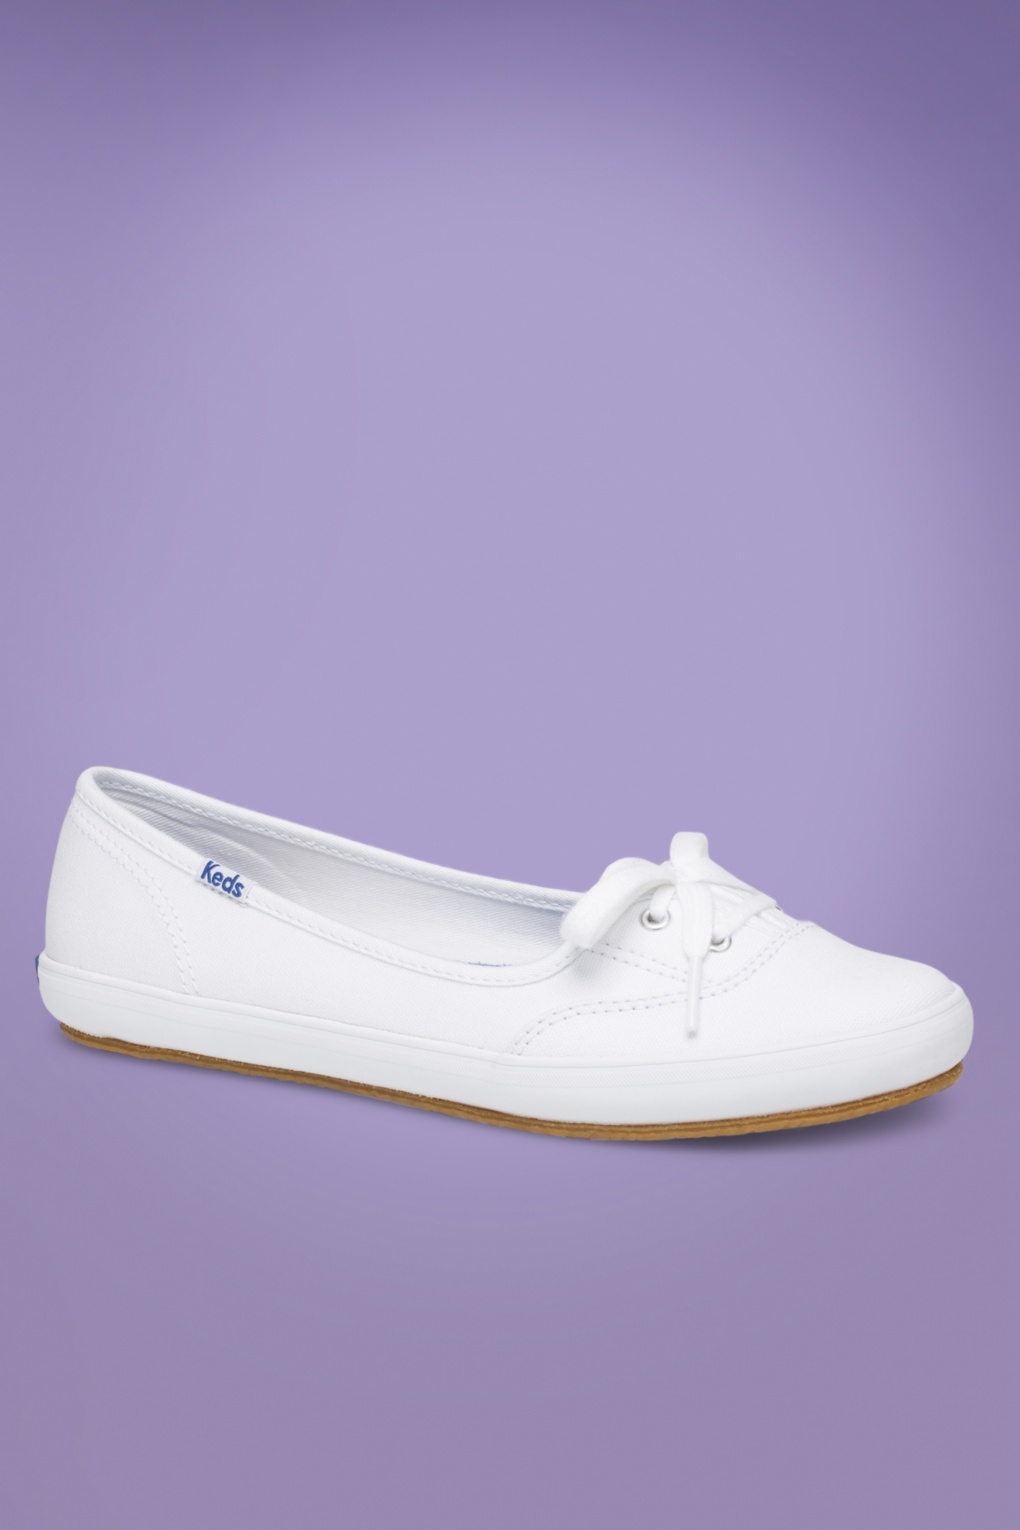 6dd4a52ae82 Teacup twill ballerina sneakers in white jpg 1020x1530 Canvas white teacup  keds